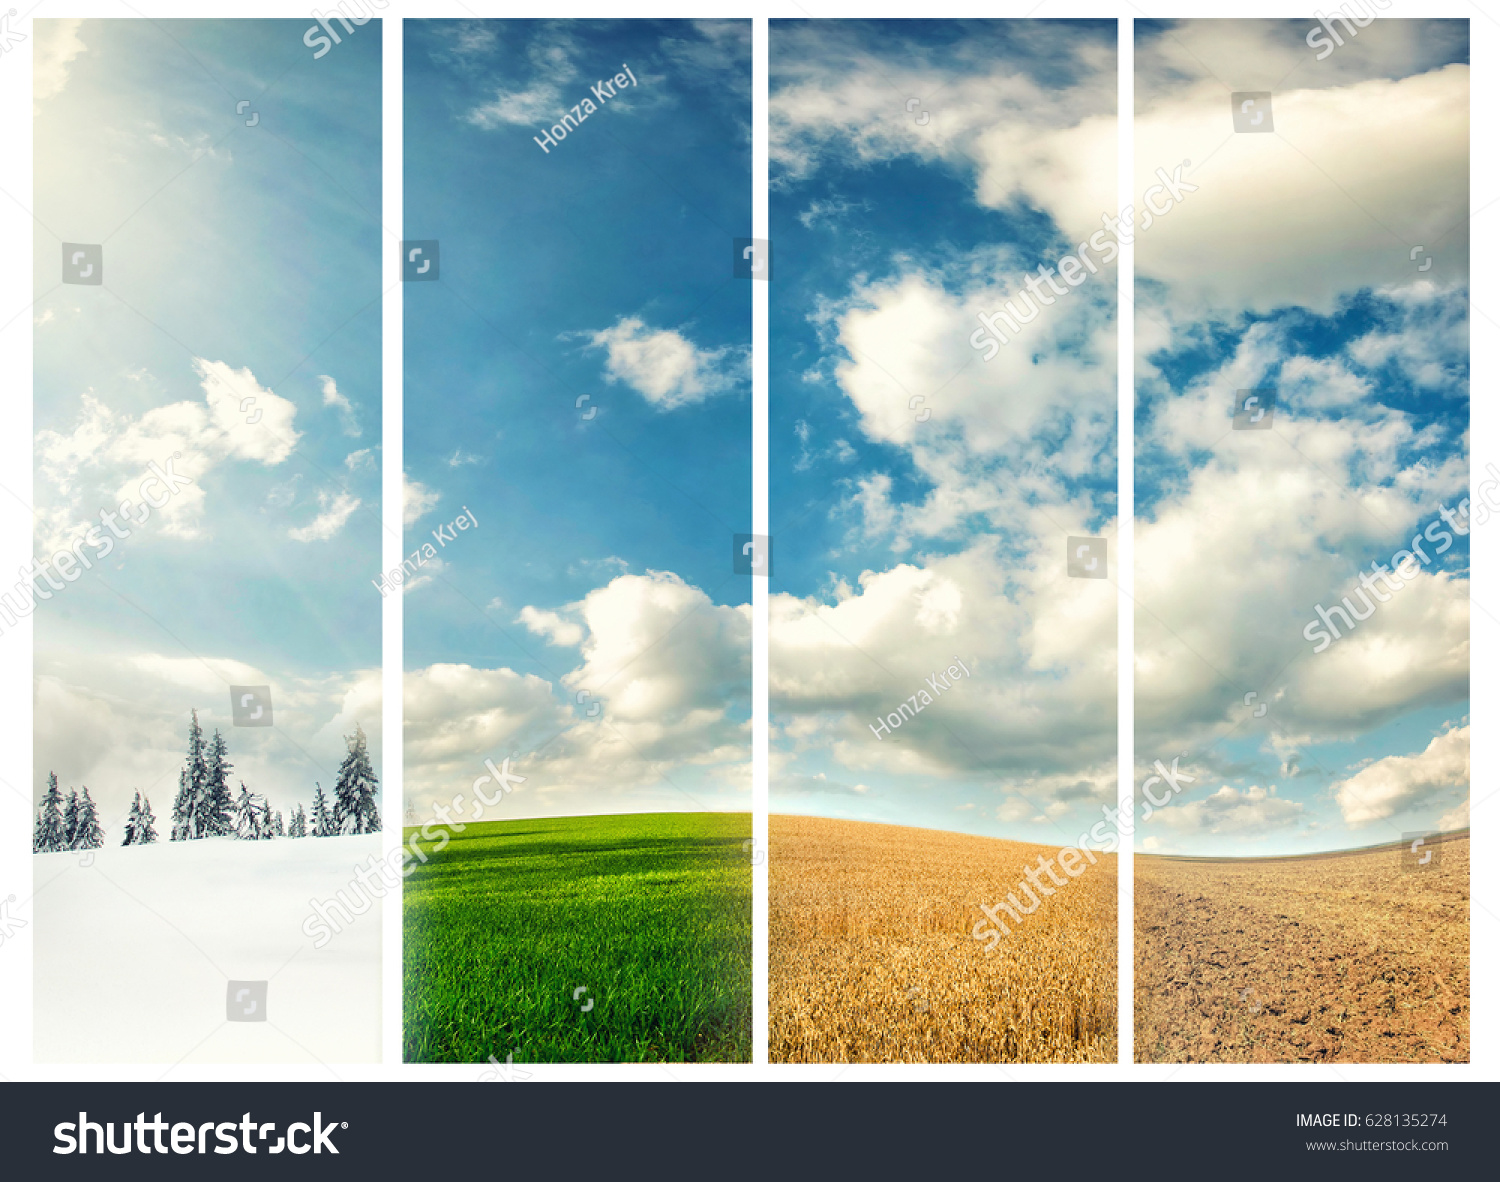 four seasons of year, winter, spring, summer and autumn, nature photo concept #628135274 - 123PhotoFree.com